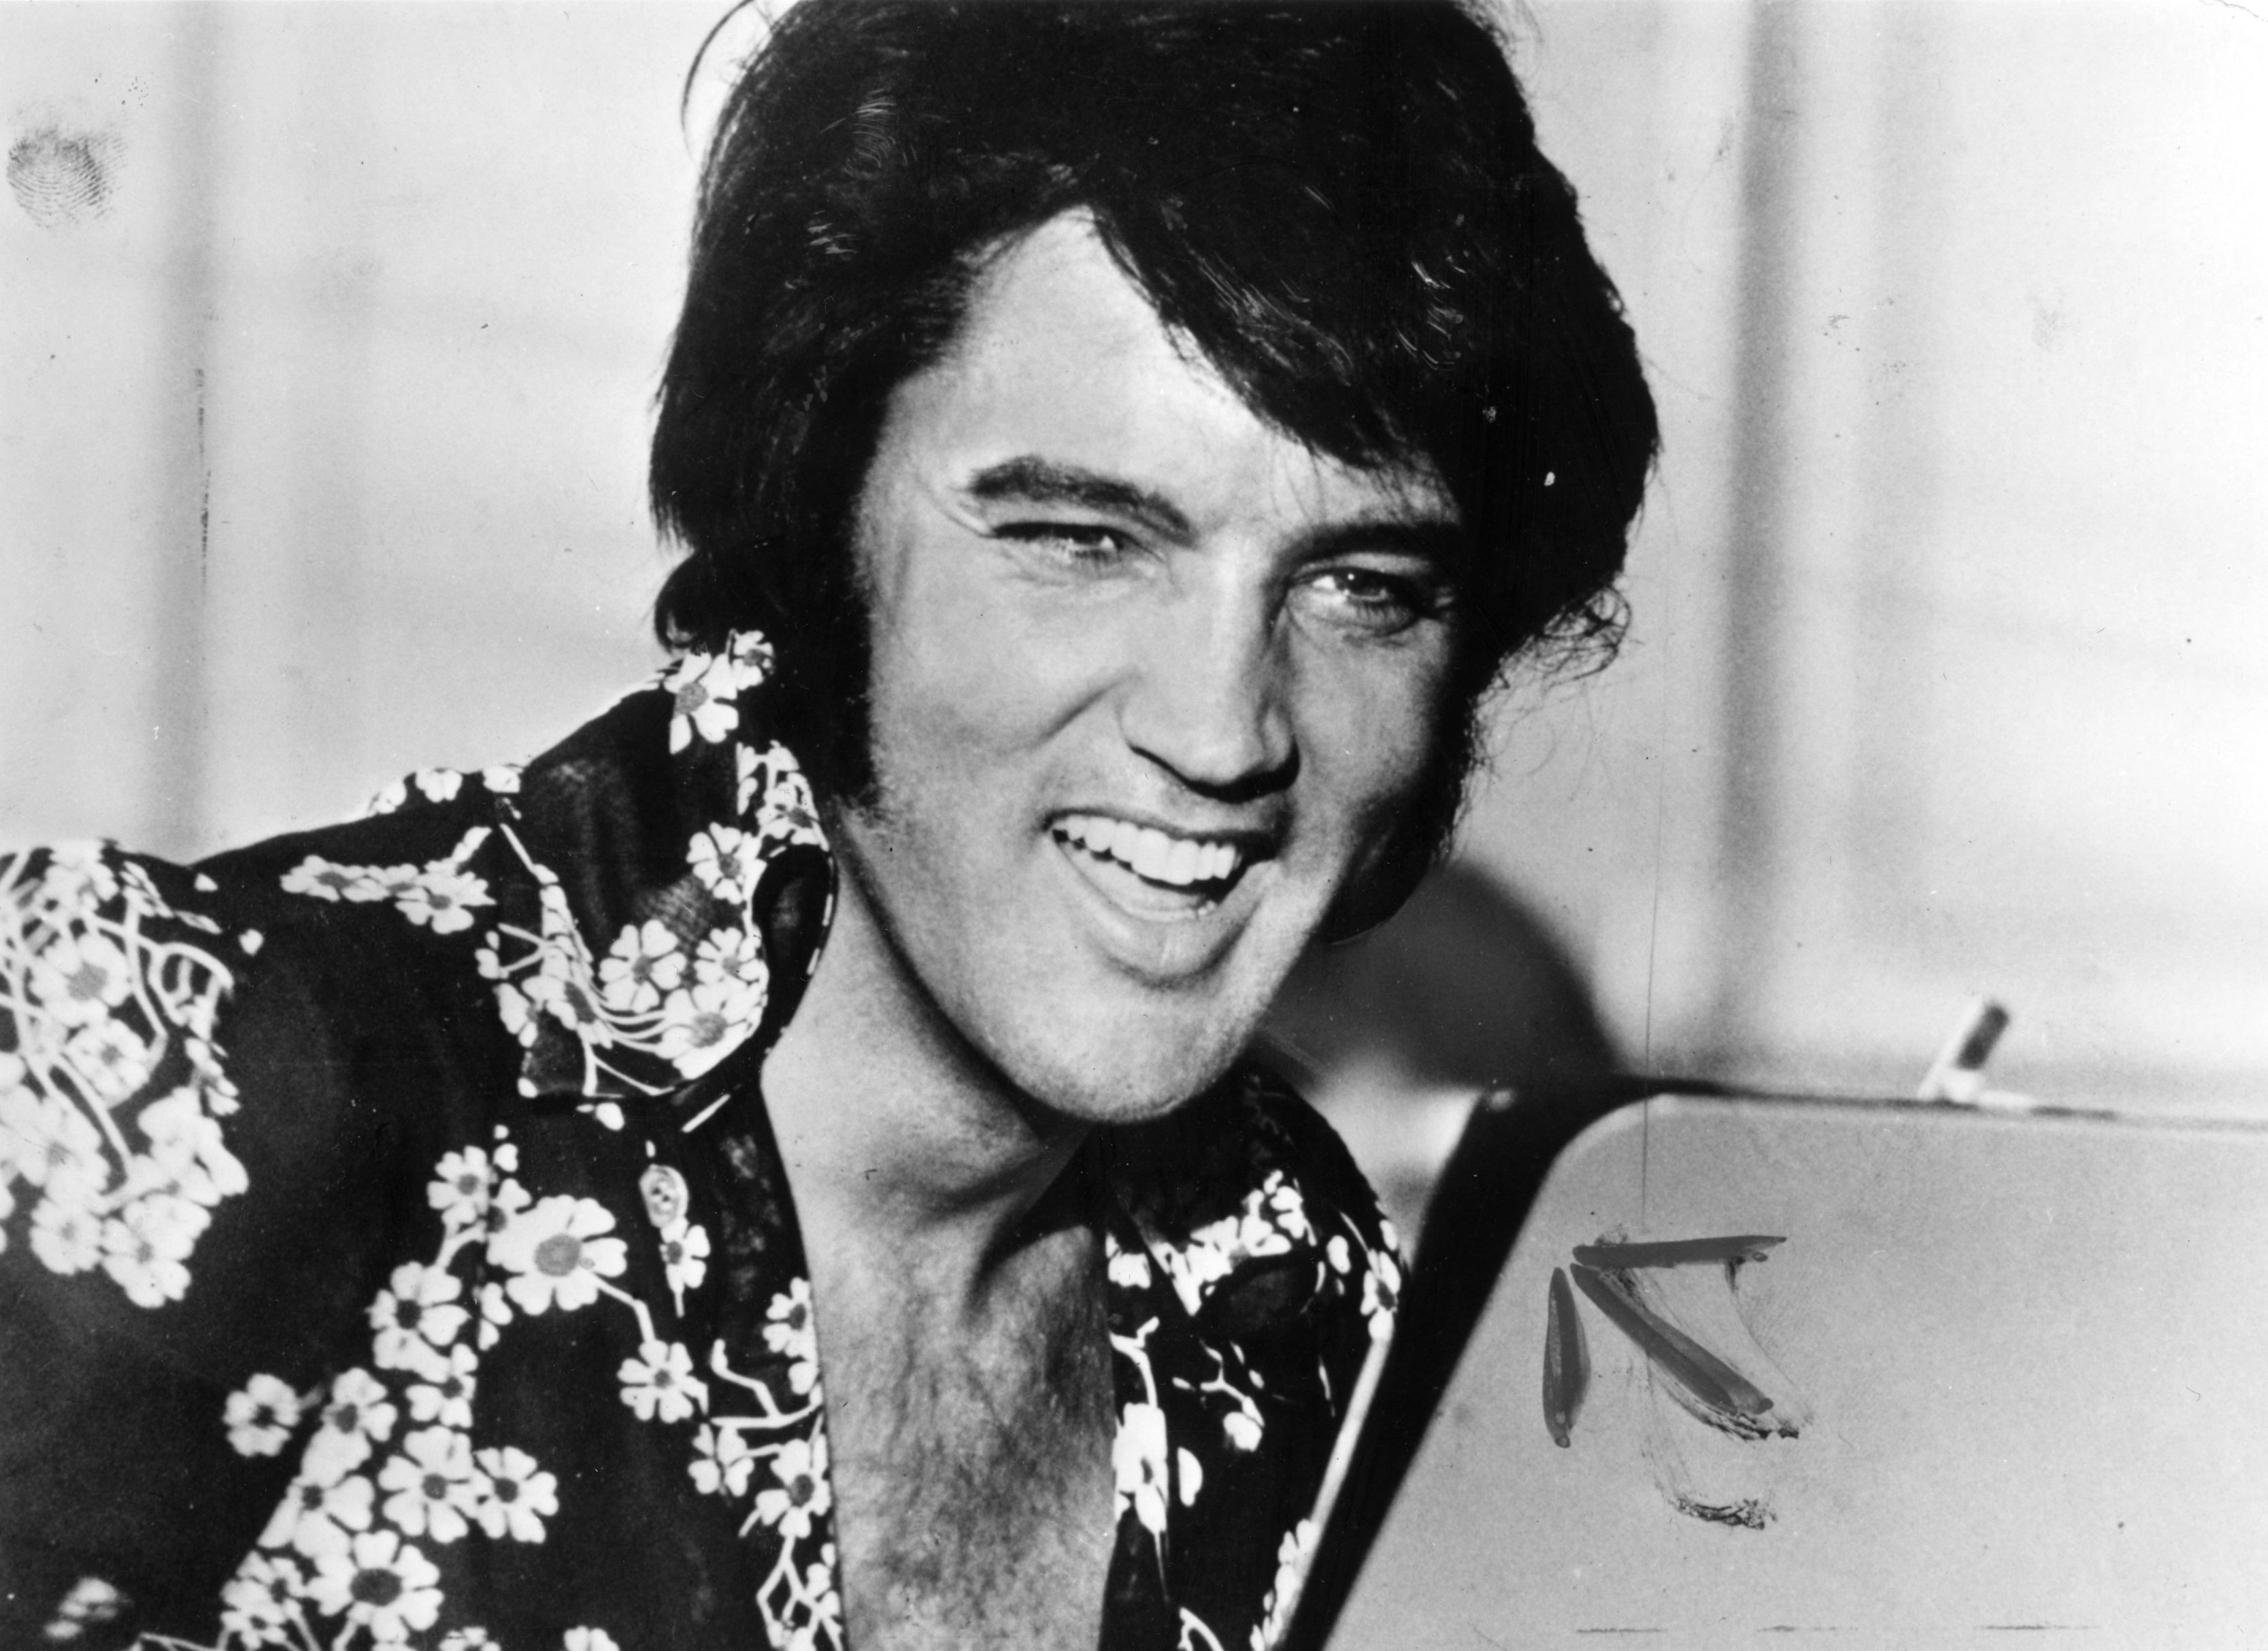 Elvis em 1975 (Foto: Getty Images)